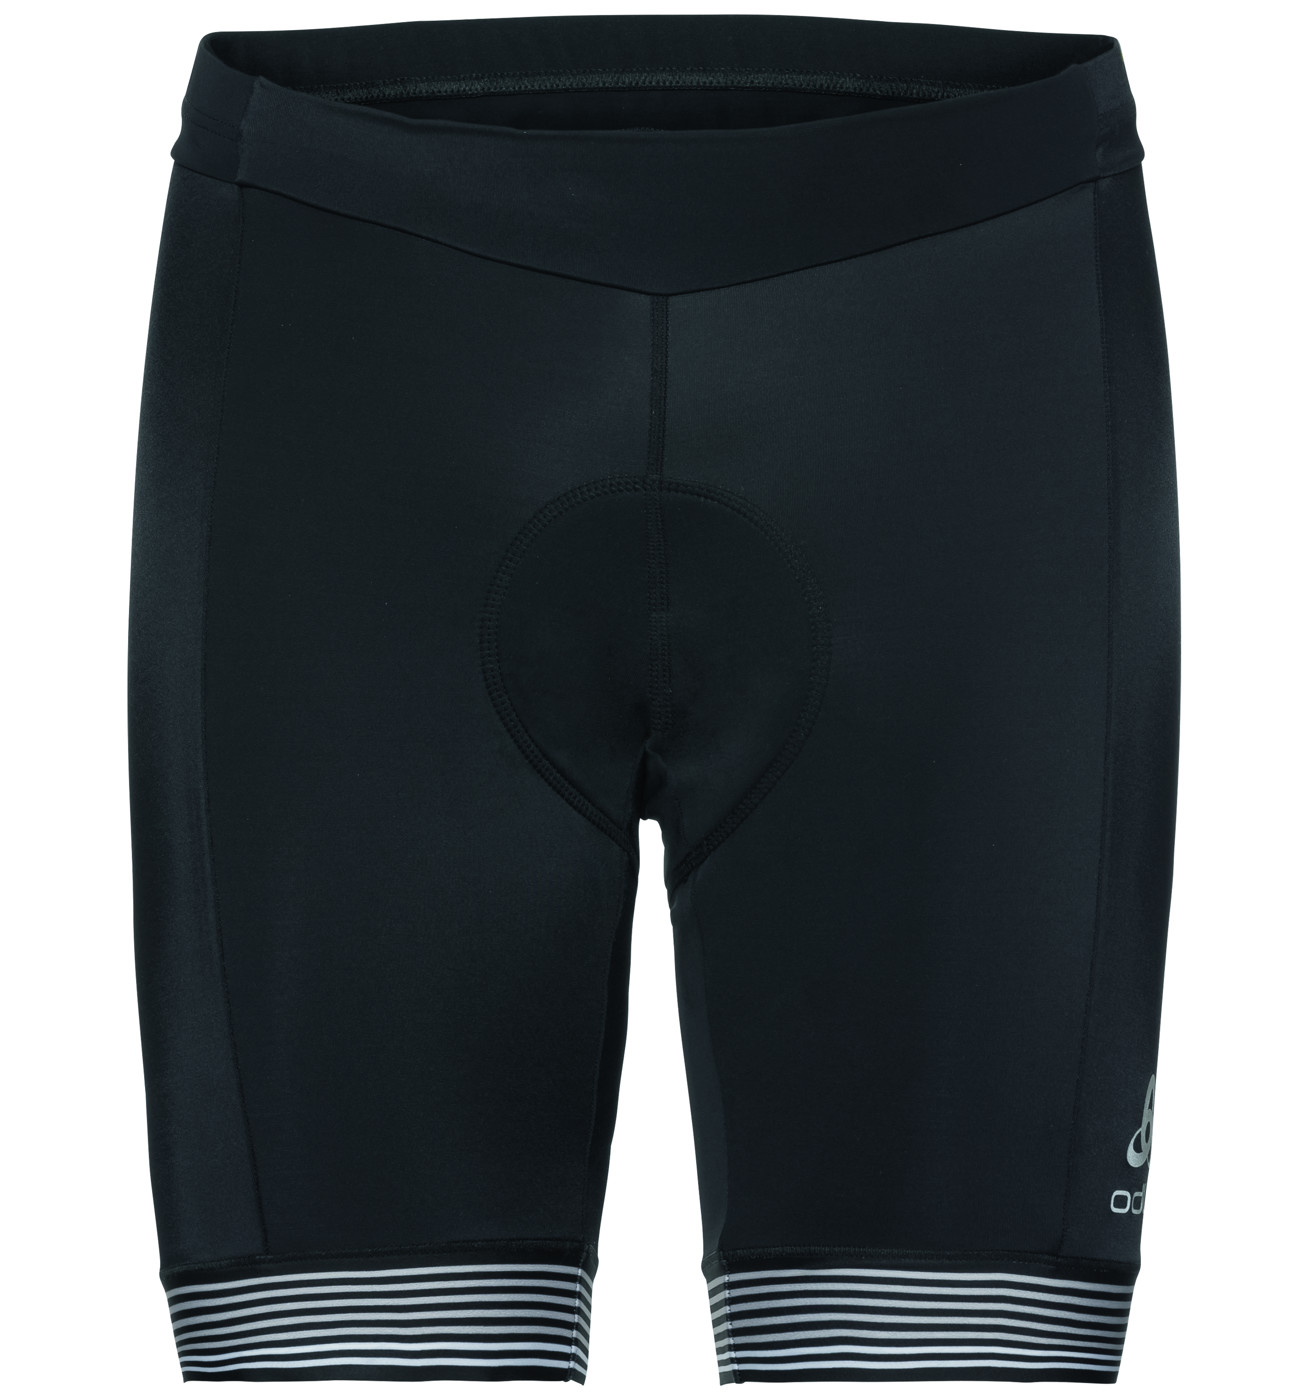 ODLO Tights short ZEROWEIGHT - Herren